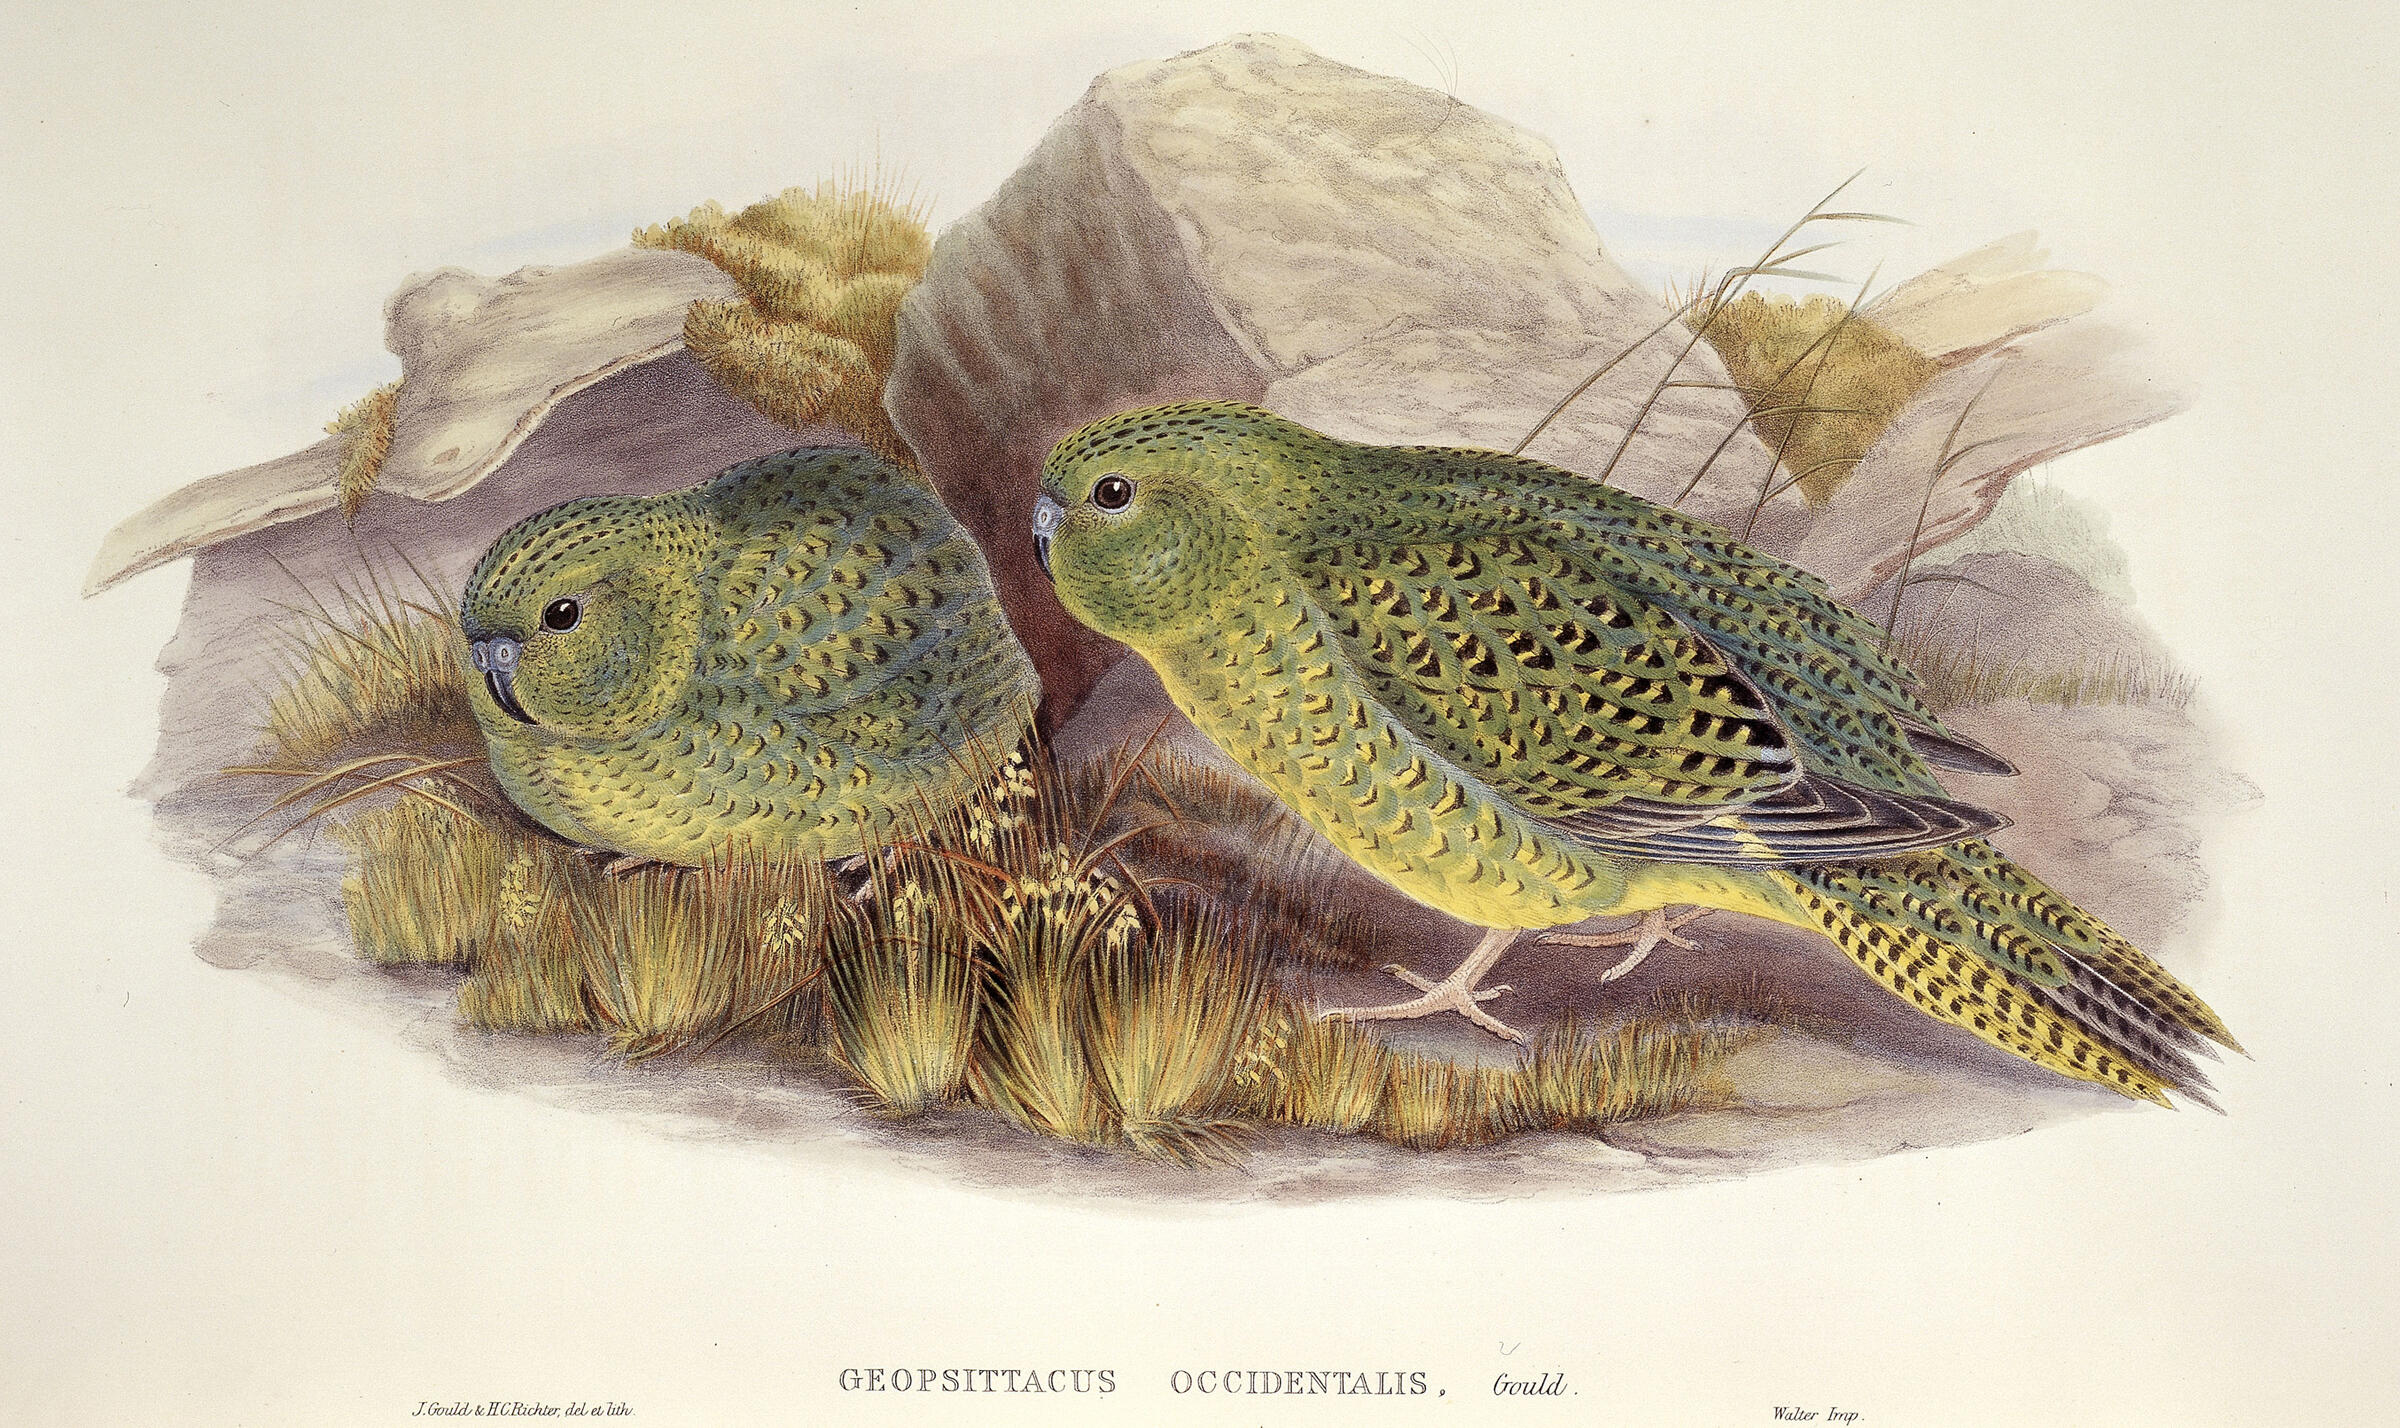 Night Parrots. Illustration: The Natural History Museum/Alamy